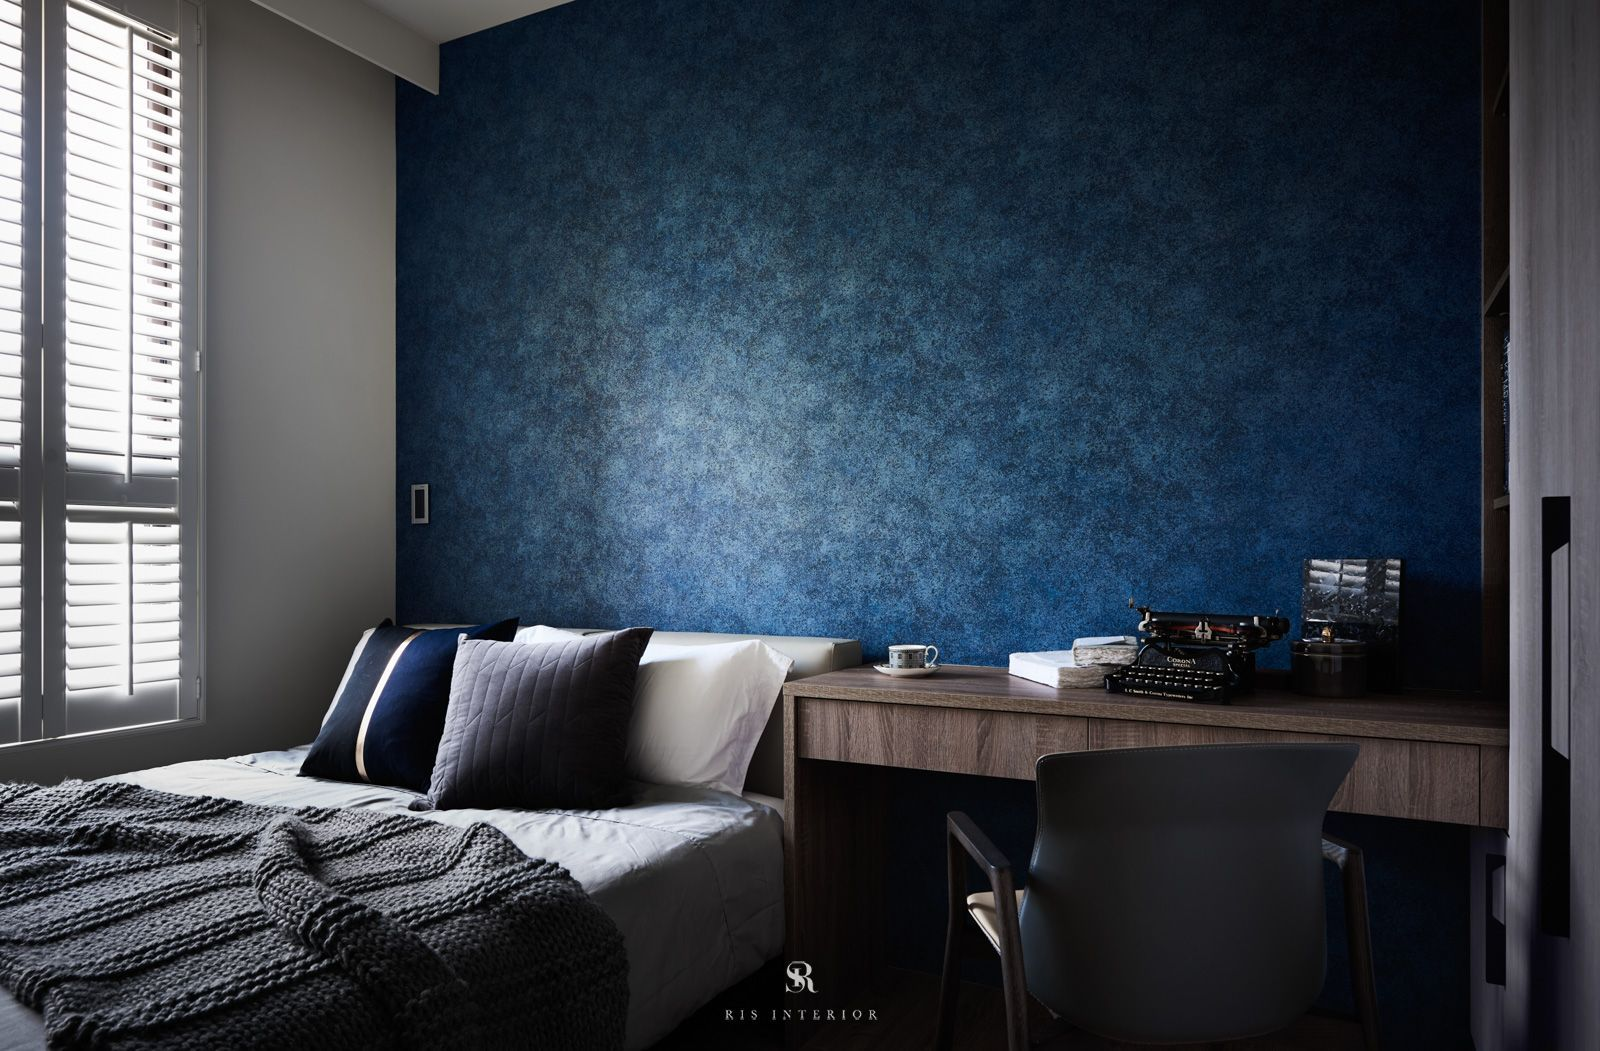 Amazing Bedroom Ideas And Inspiration. Styles: Hygge Colors: Dark Blue Features:  Shutters, Wallpaper, Home Office Ideas. From Apartment Project: Van Der  Vein.